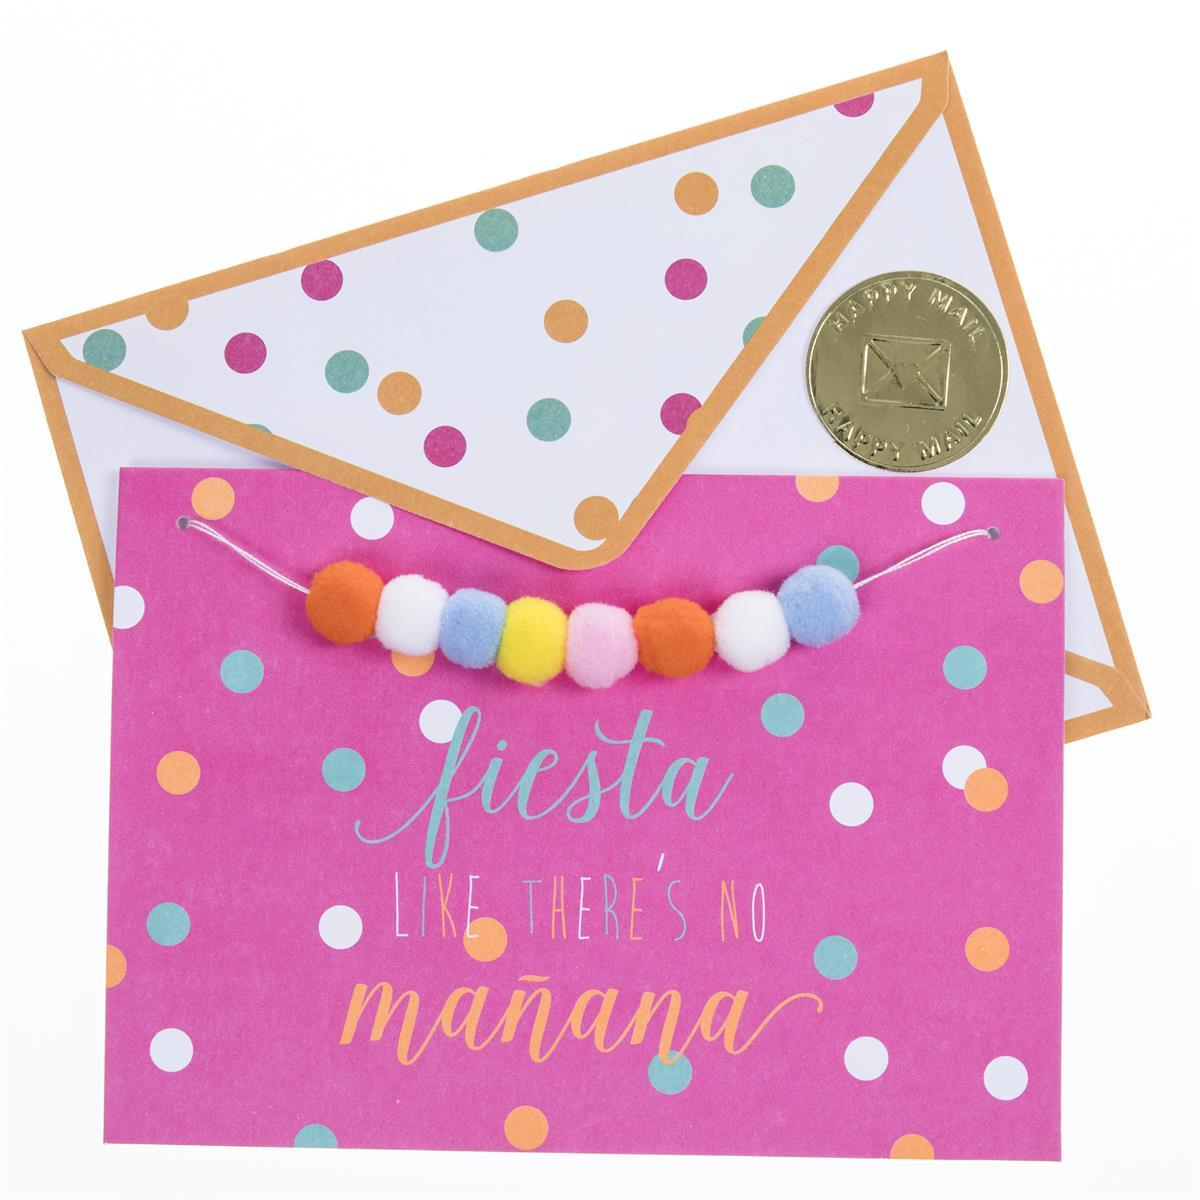 Fiesta Like There's No Manana Birthday Handmade Card